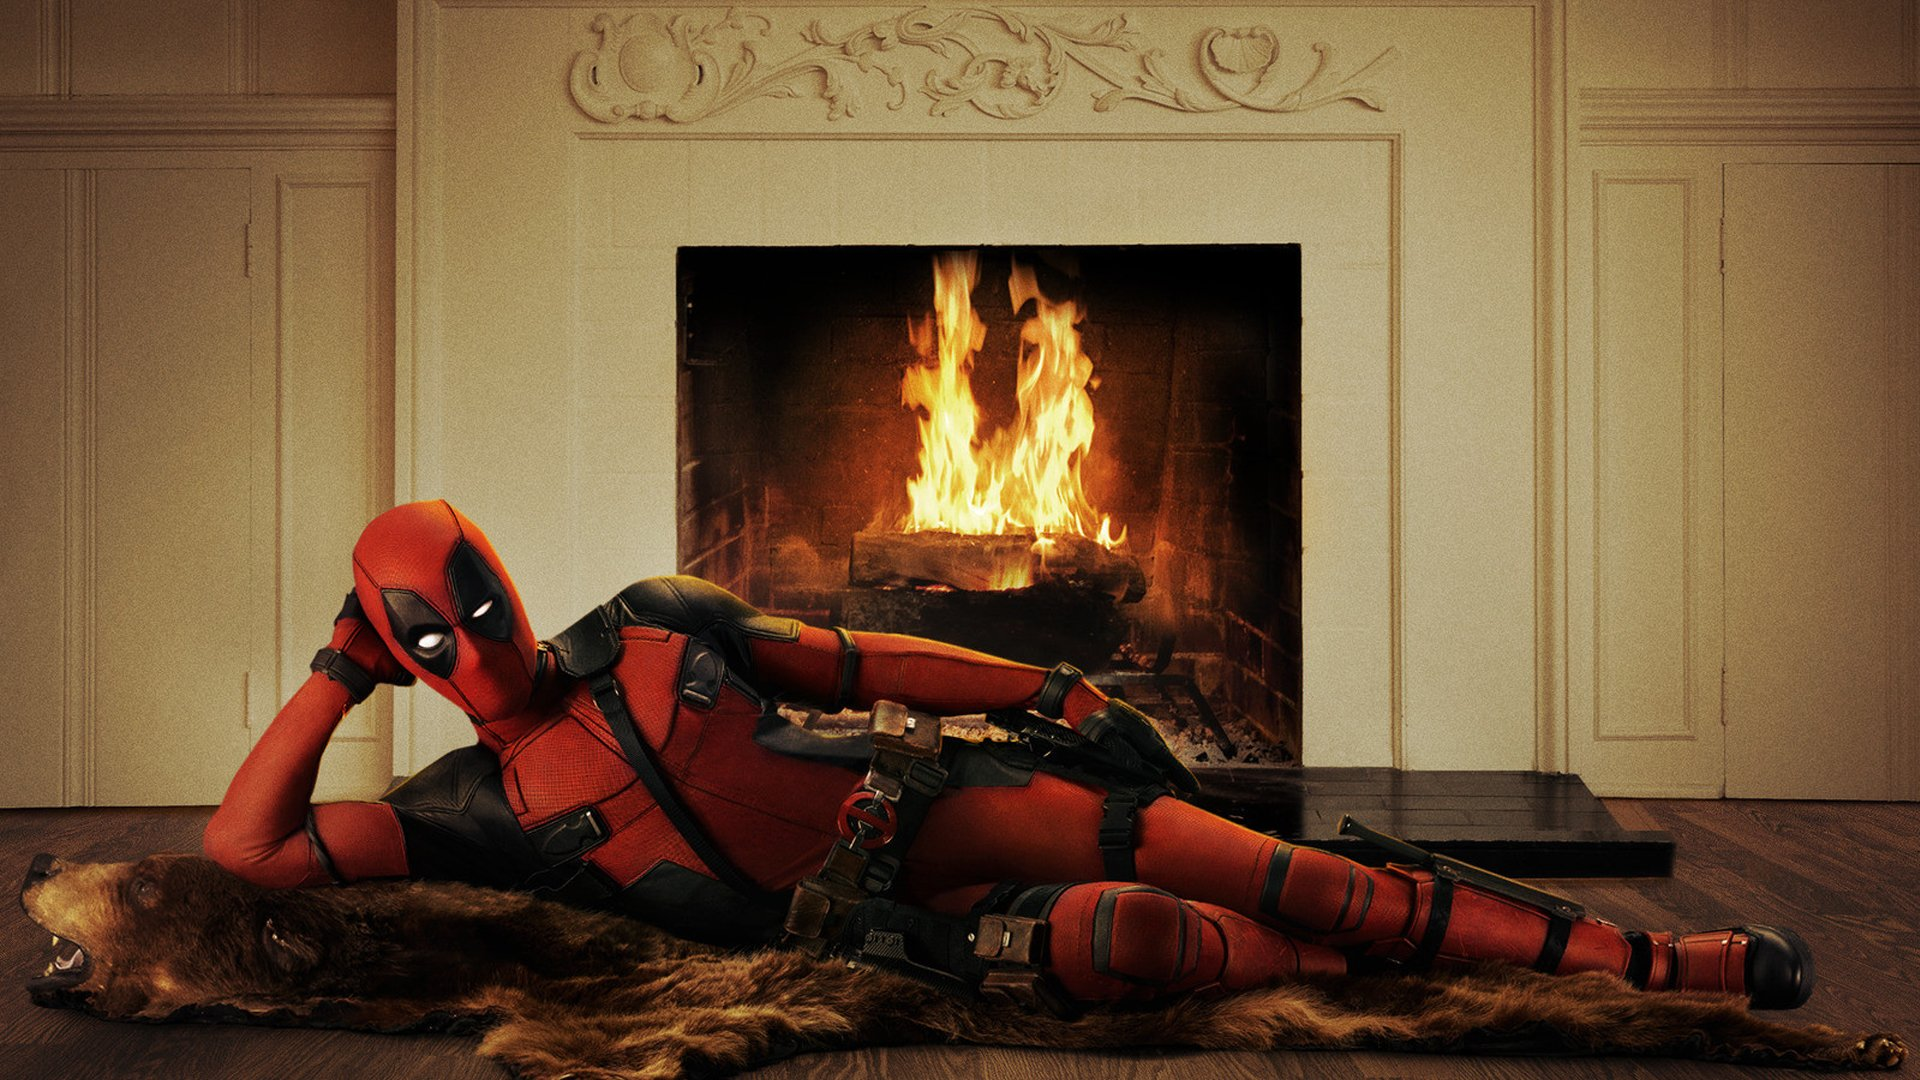 Prague Courtney Dc Deadpool Superhero Series Movie Poster Printed Canvaswall Decoration 24X36In(1450195770646)